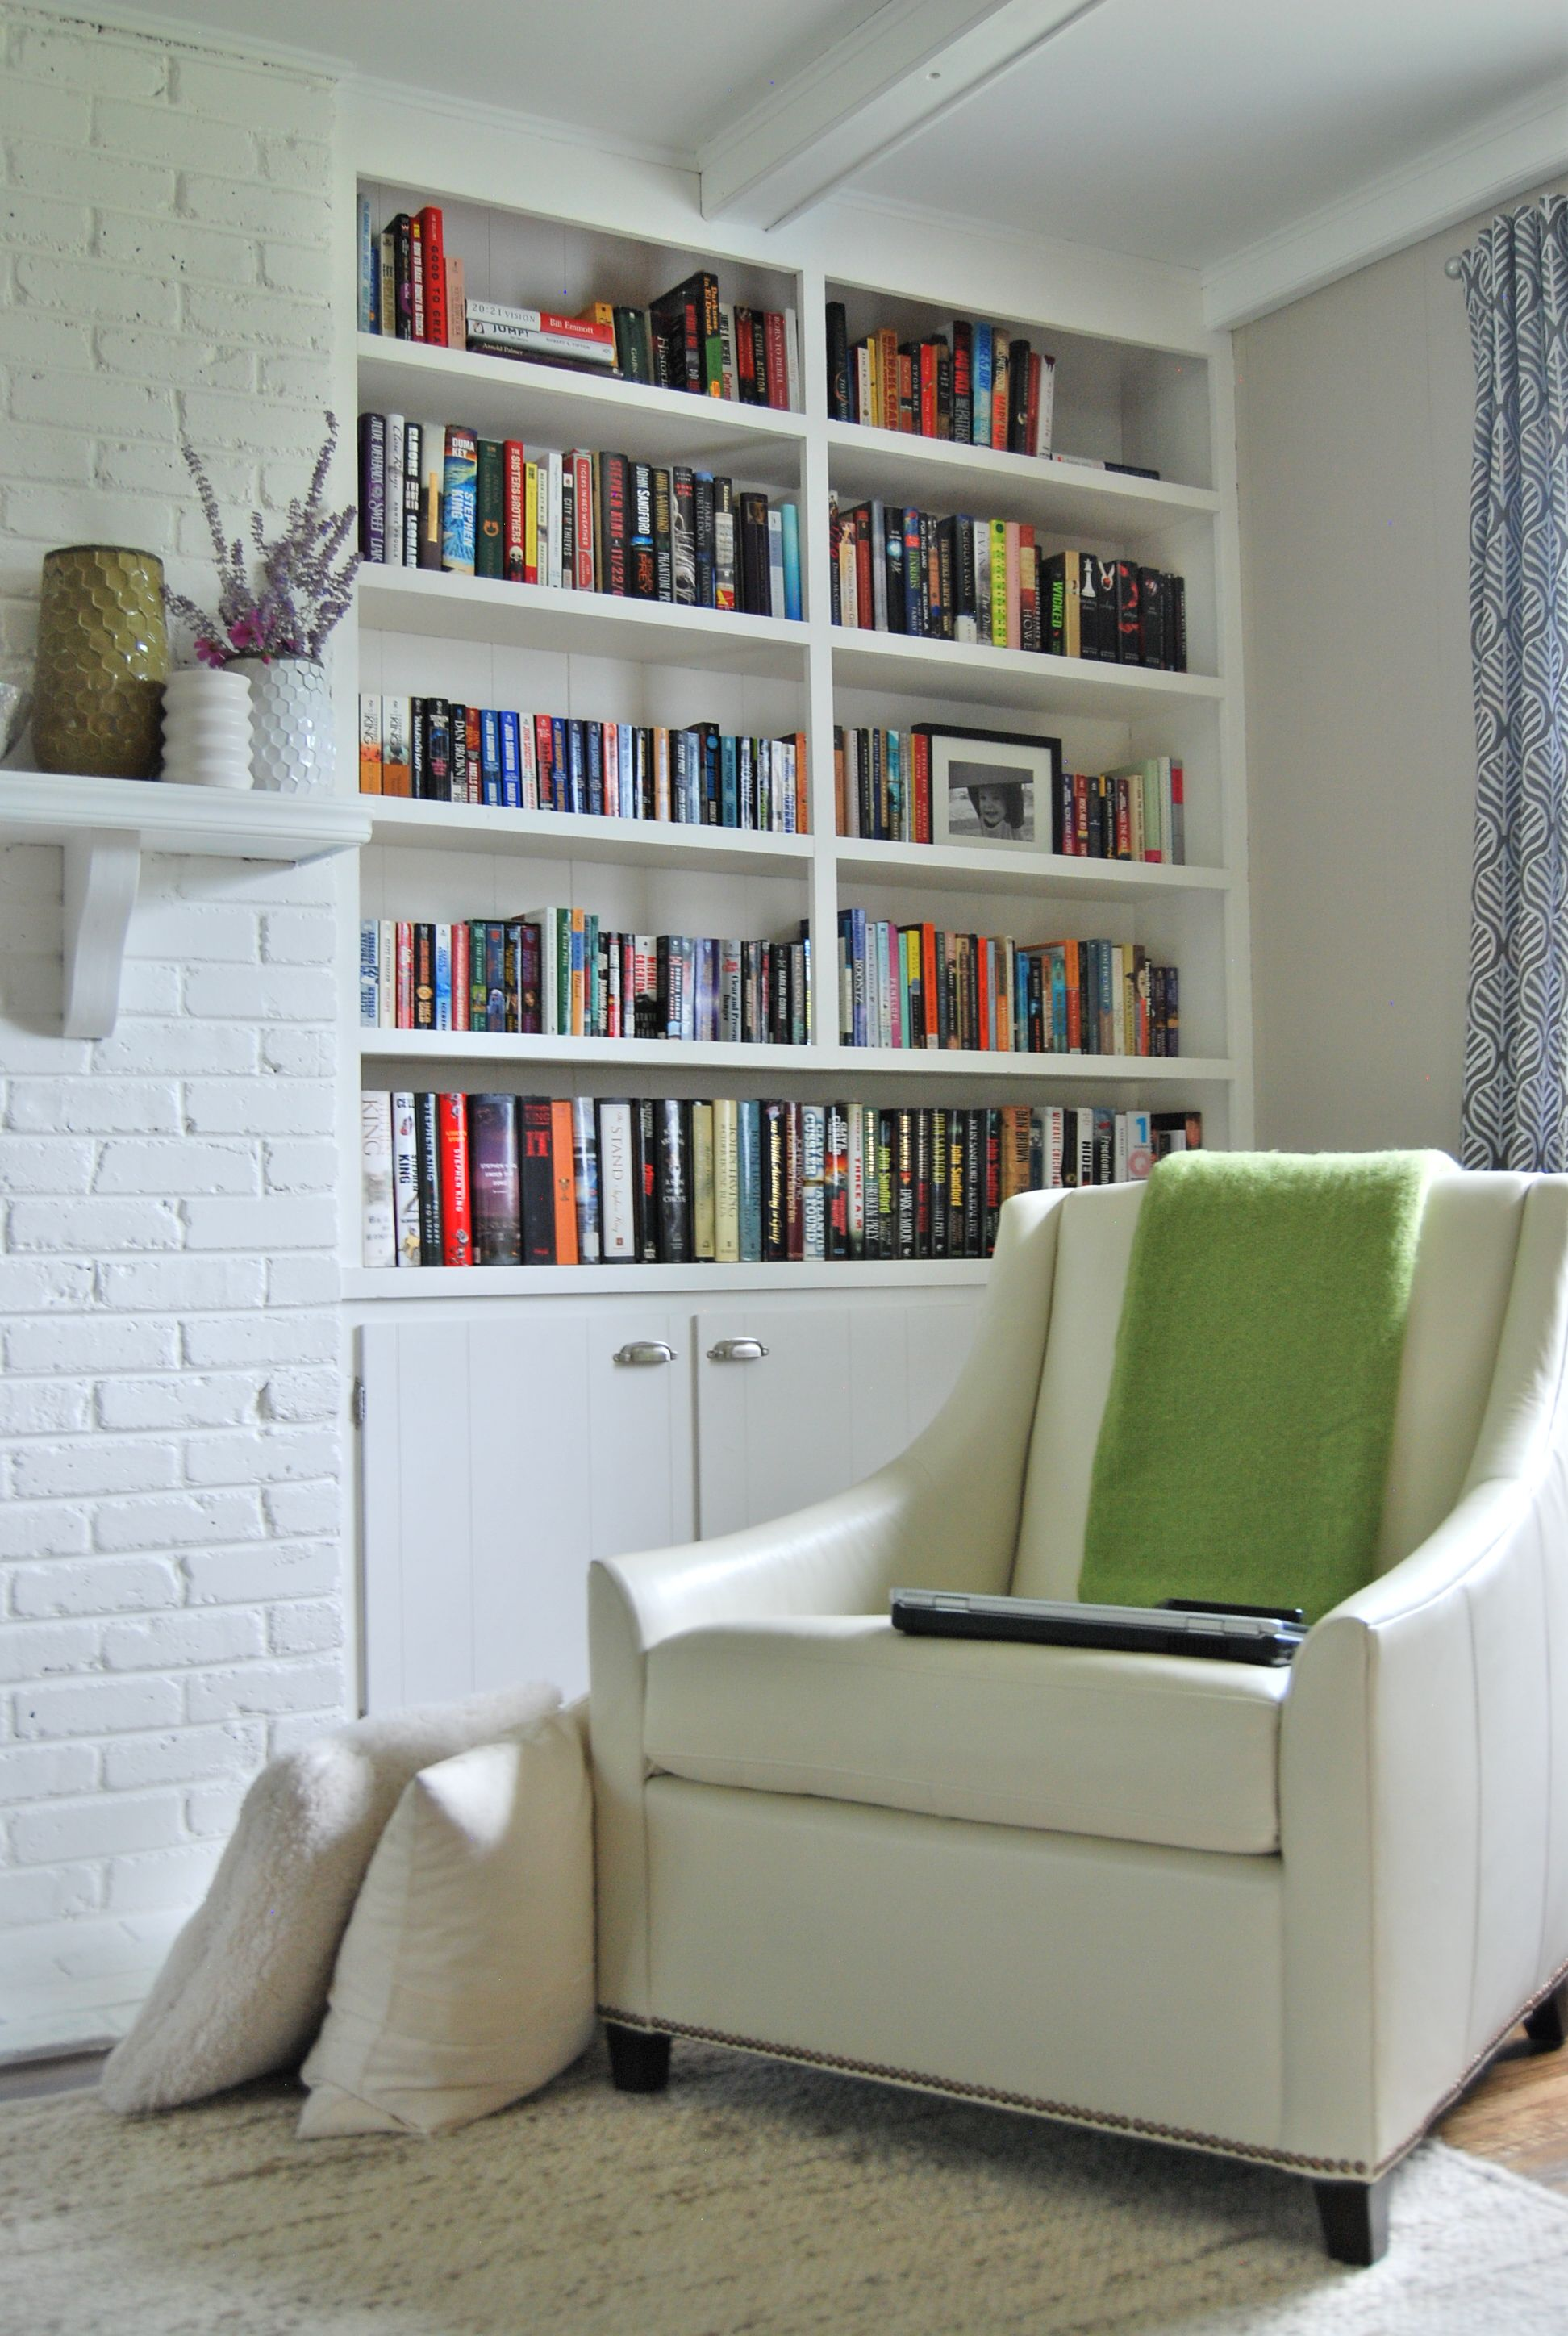 Explore Small Home Libraries And More!